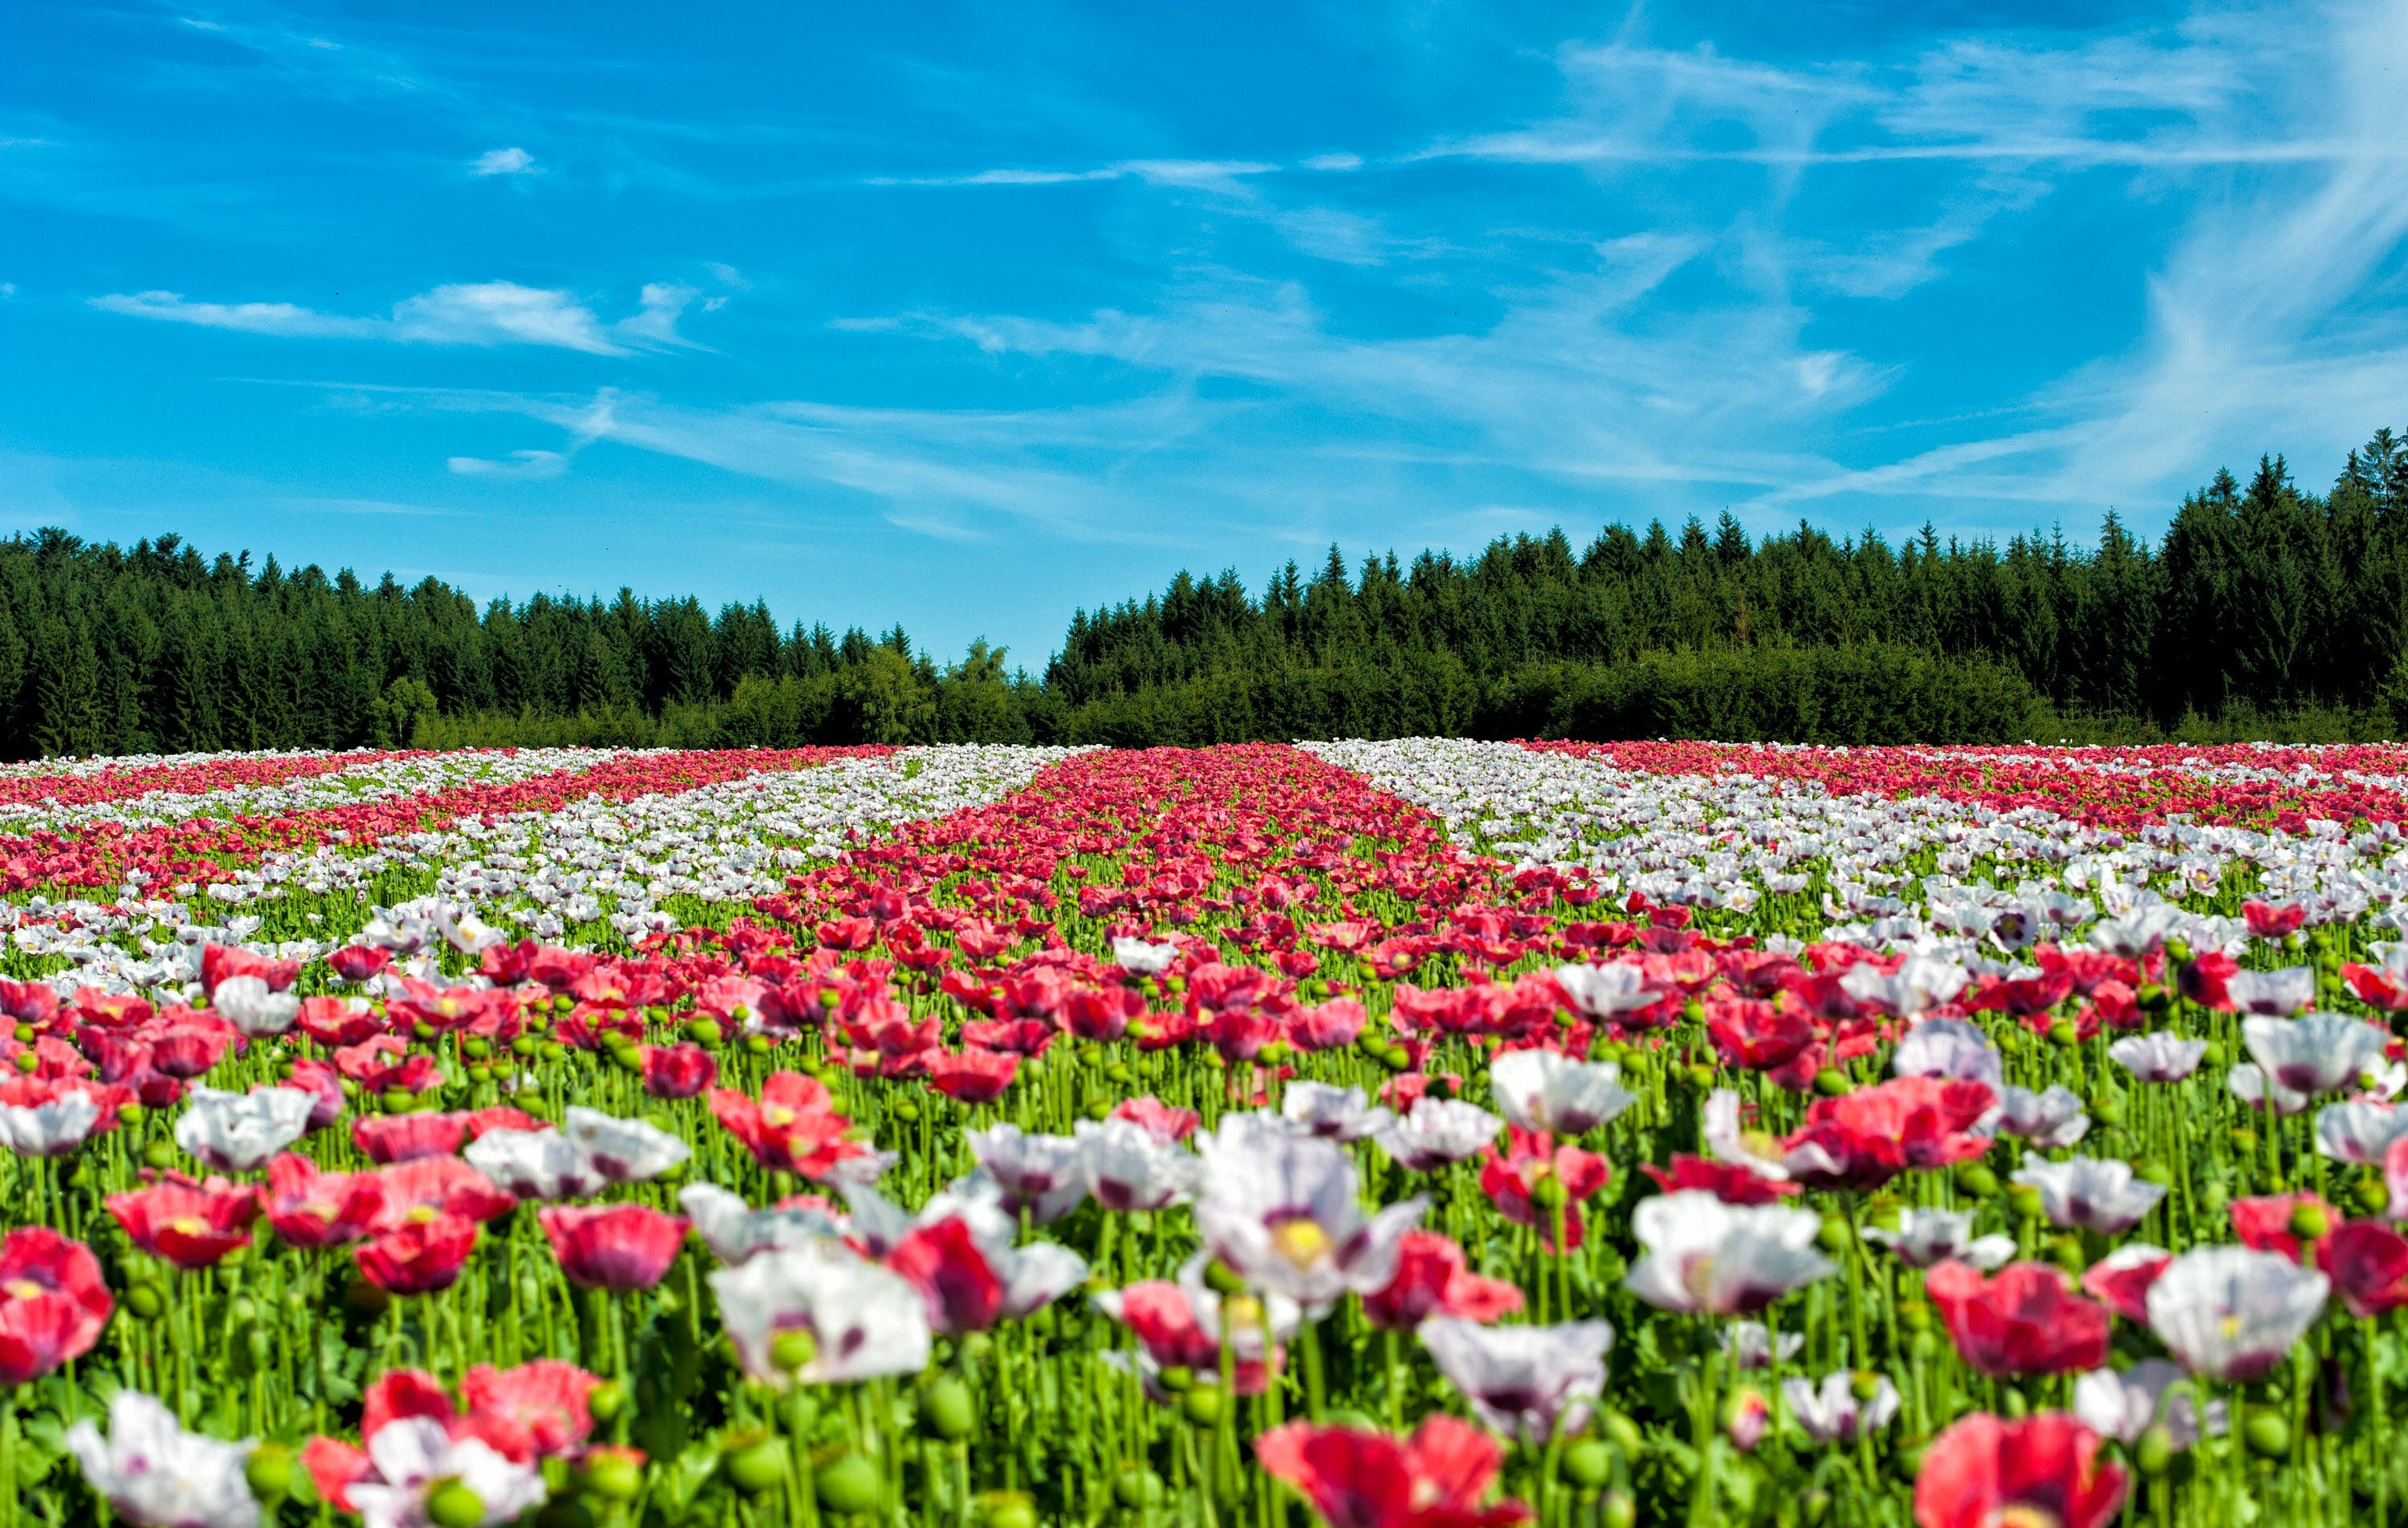 Red and White Flowers Under Blue Sky during Daytime